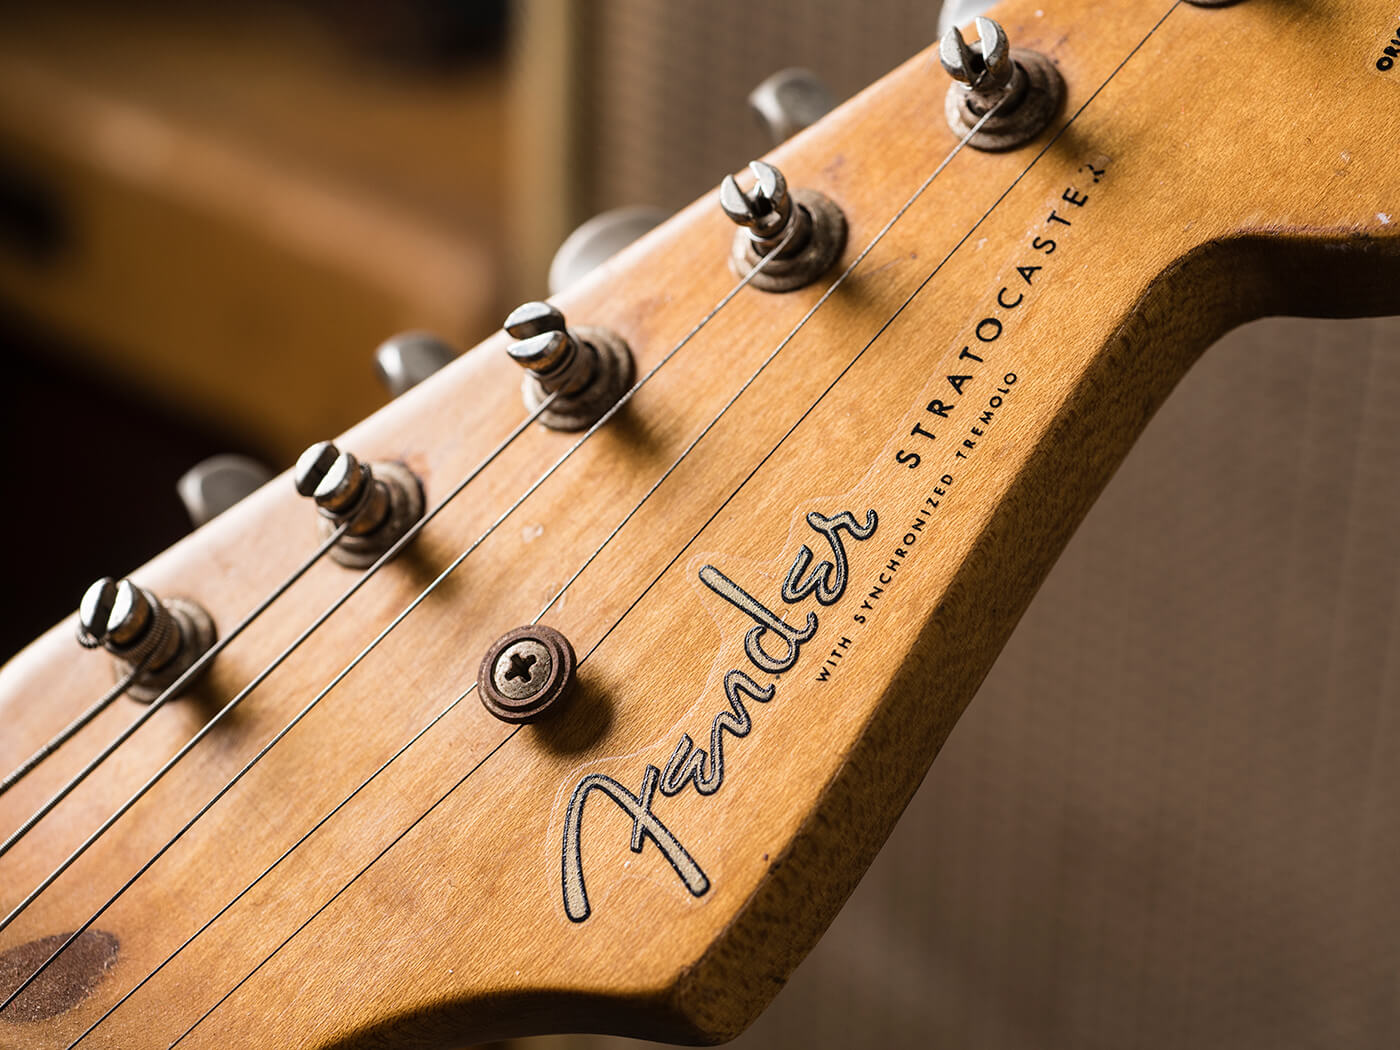 Fender Musical Instruments announces a change in ownership - Guitar.com | All Things Guitar